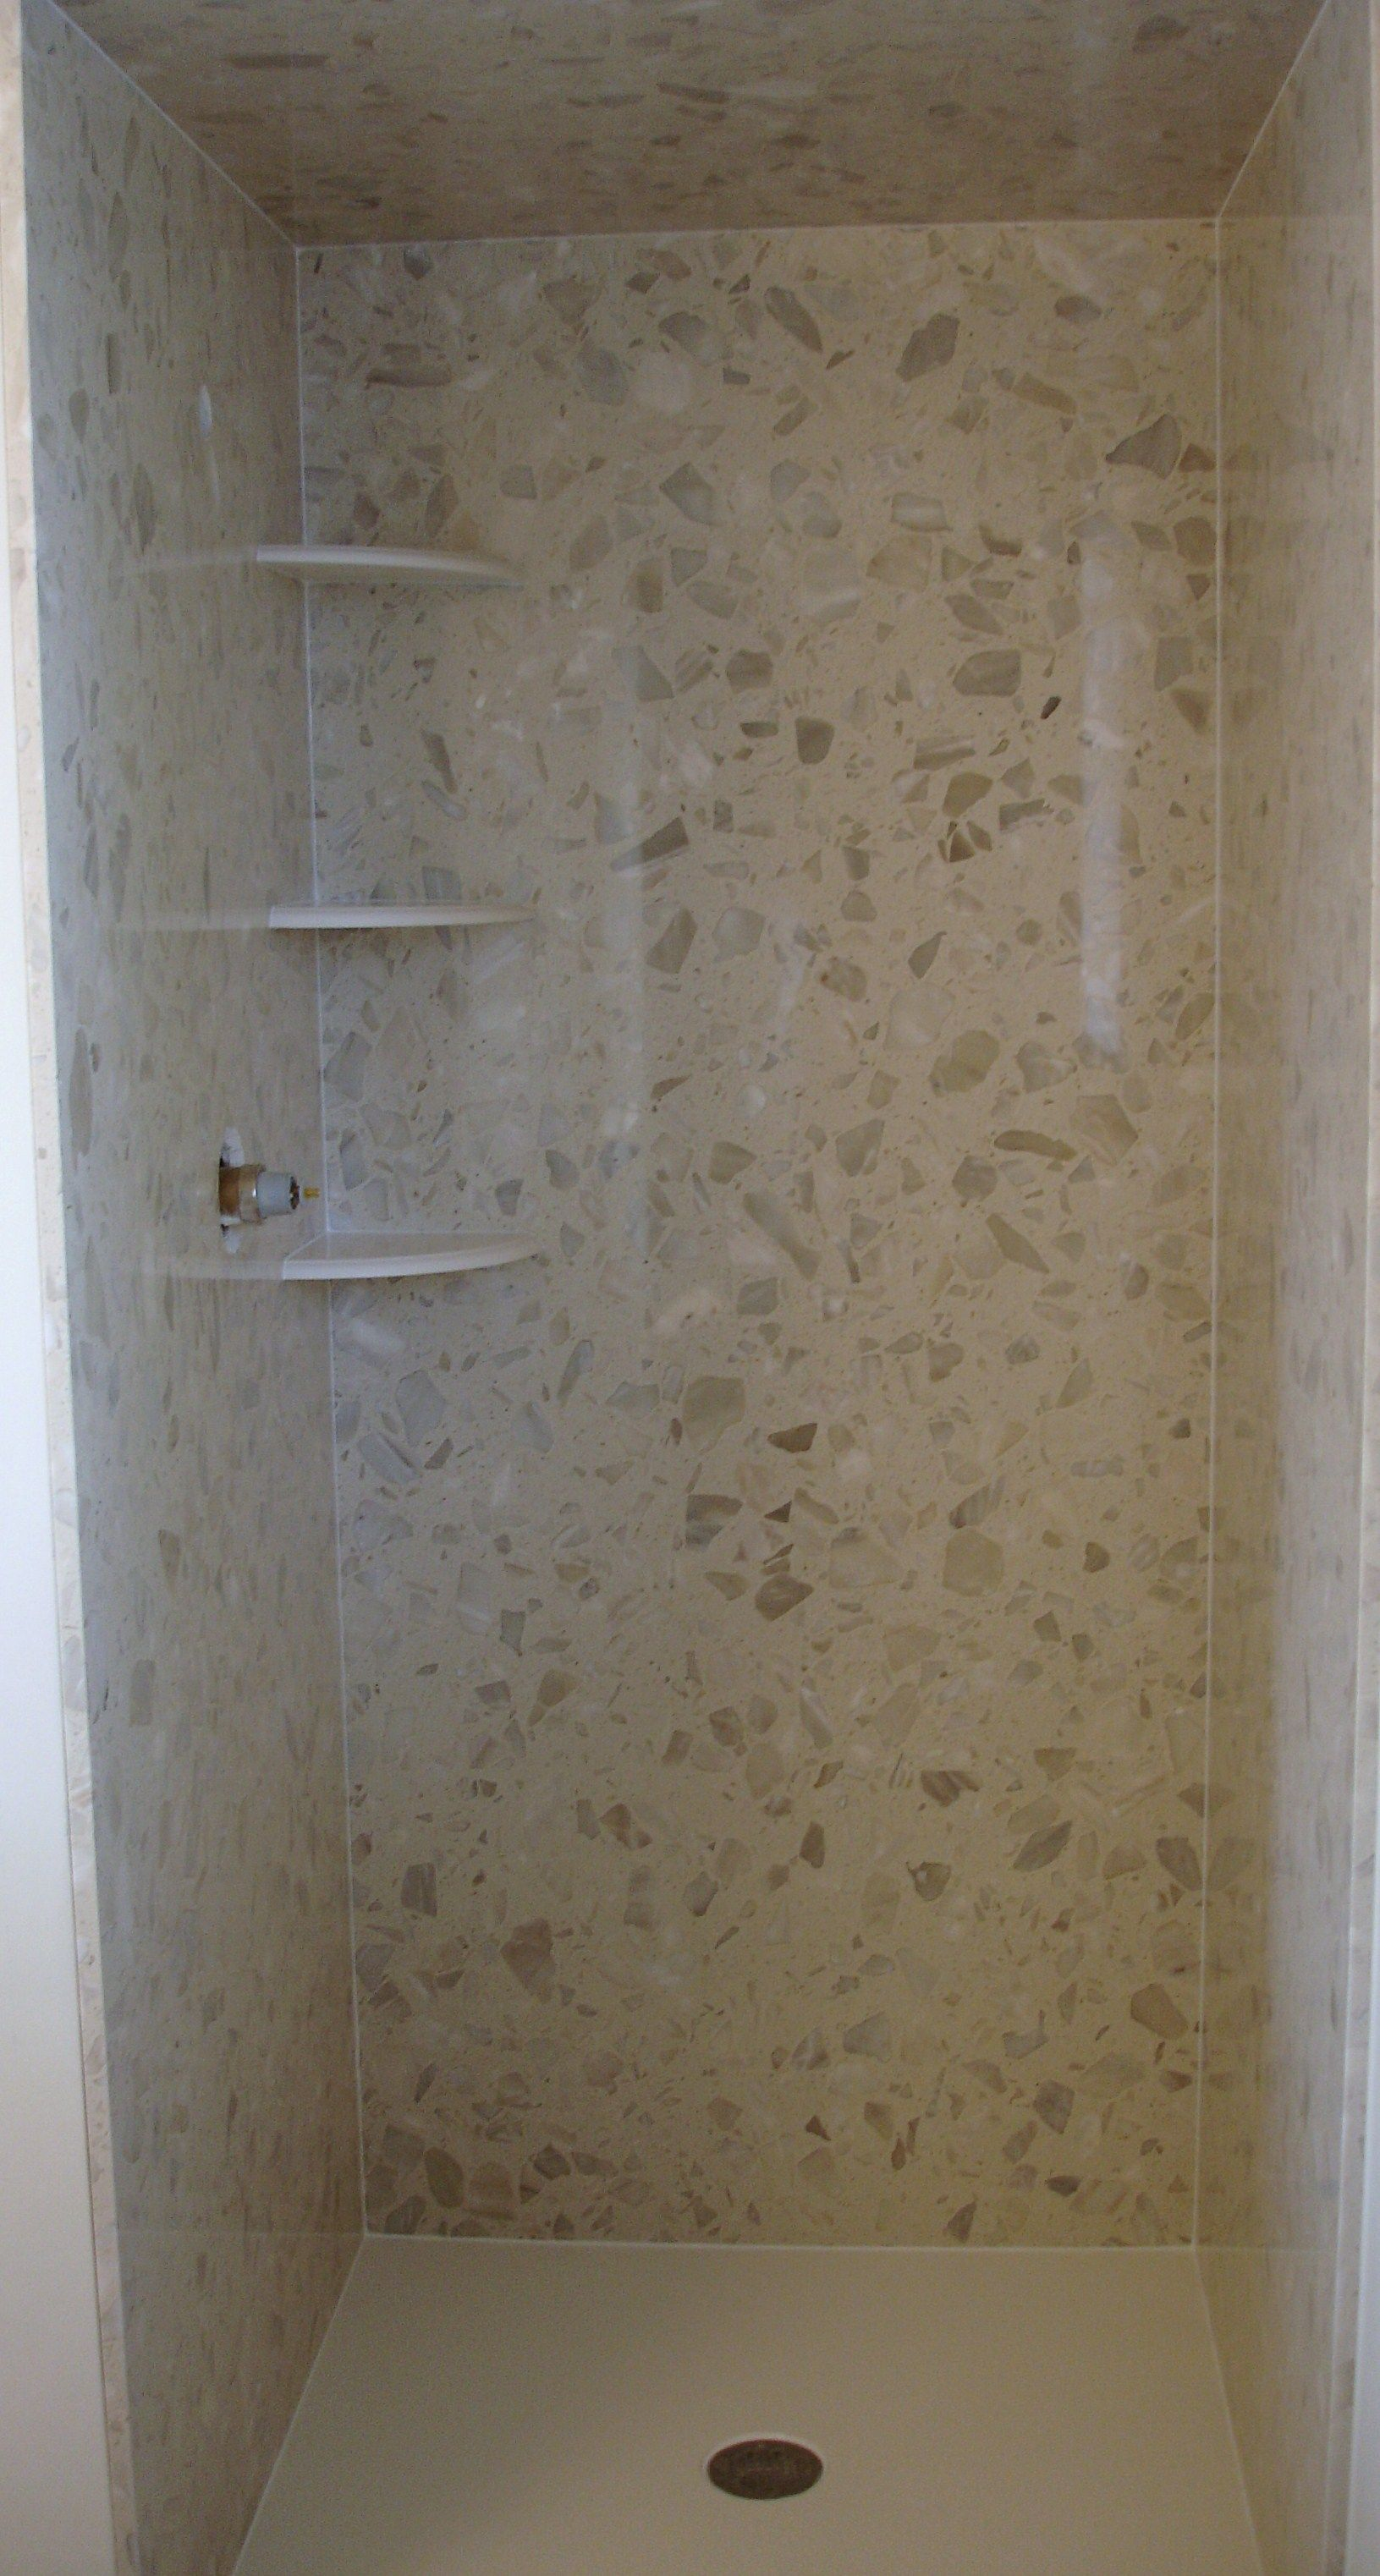 Cultured Marble Shower Procast Marble Inc Portfolio Cultured Marble Shower Cultured Marble Shower Walls Marble Showers